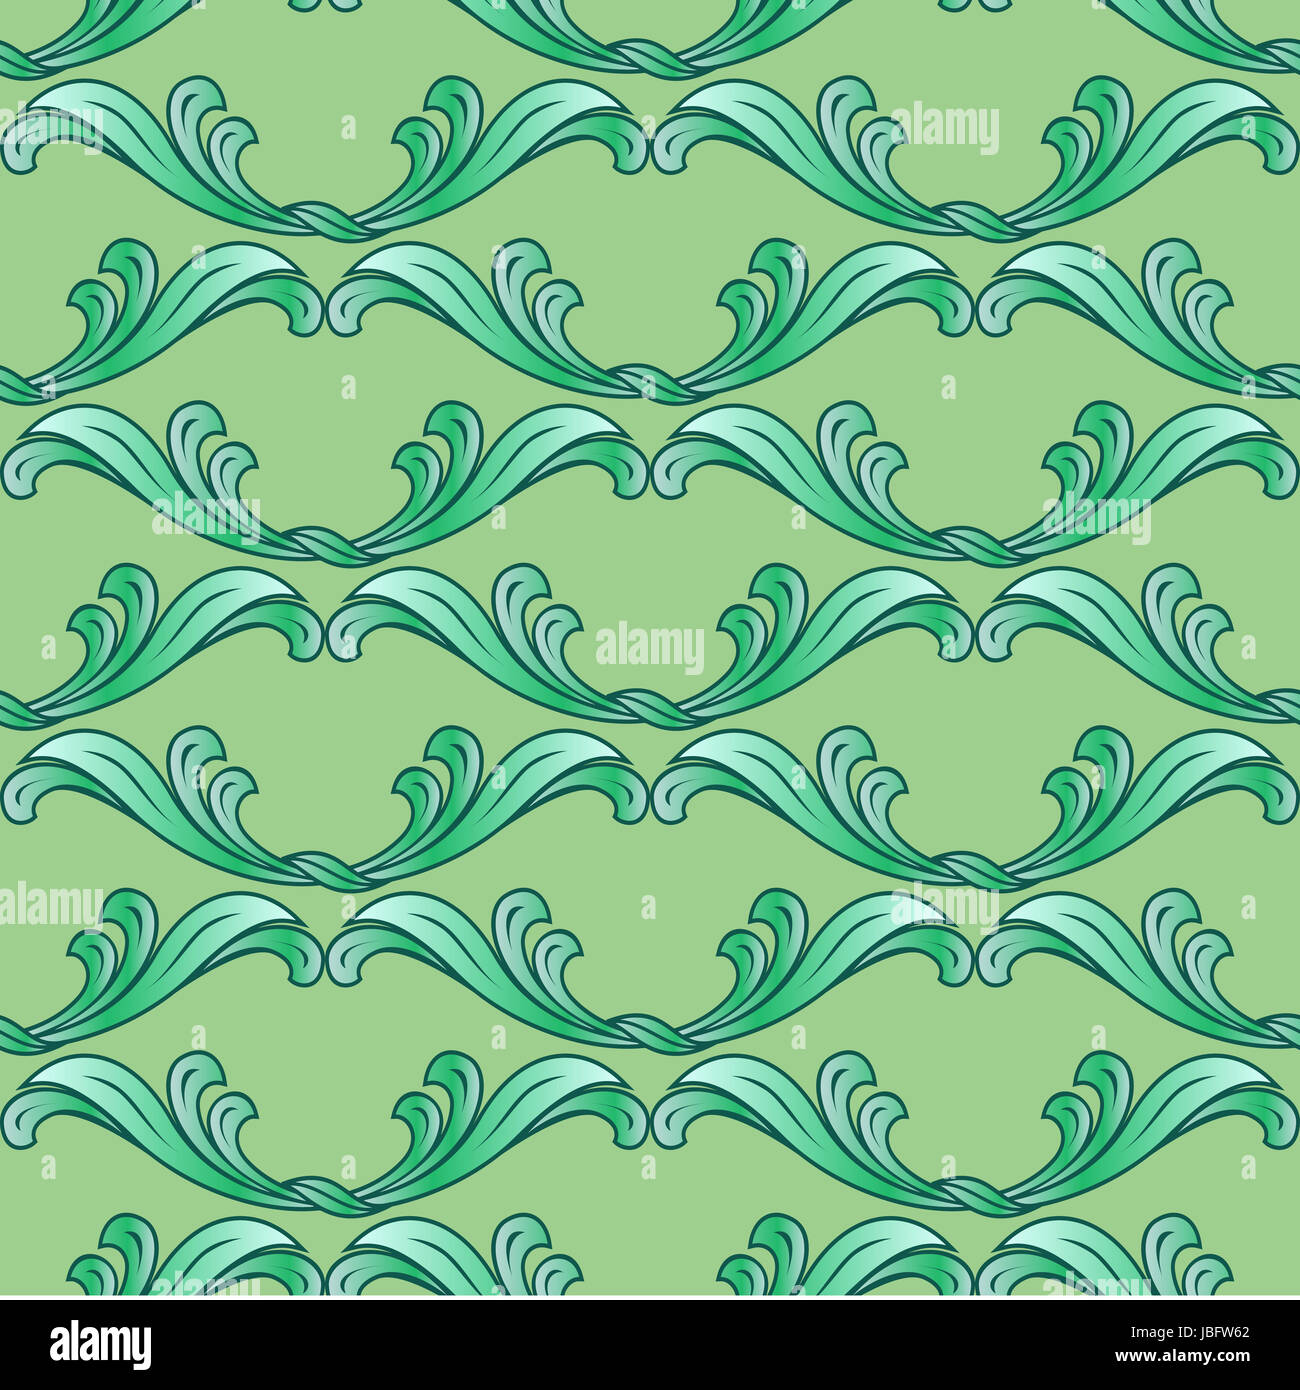 Abstract green background with ornate floral elements Stock Photo